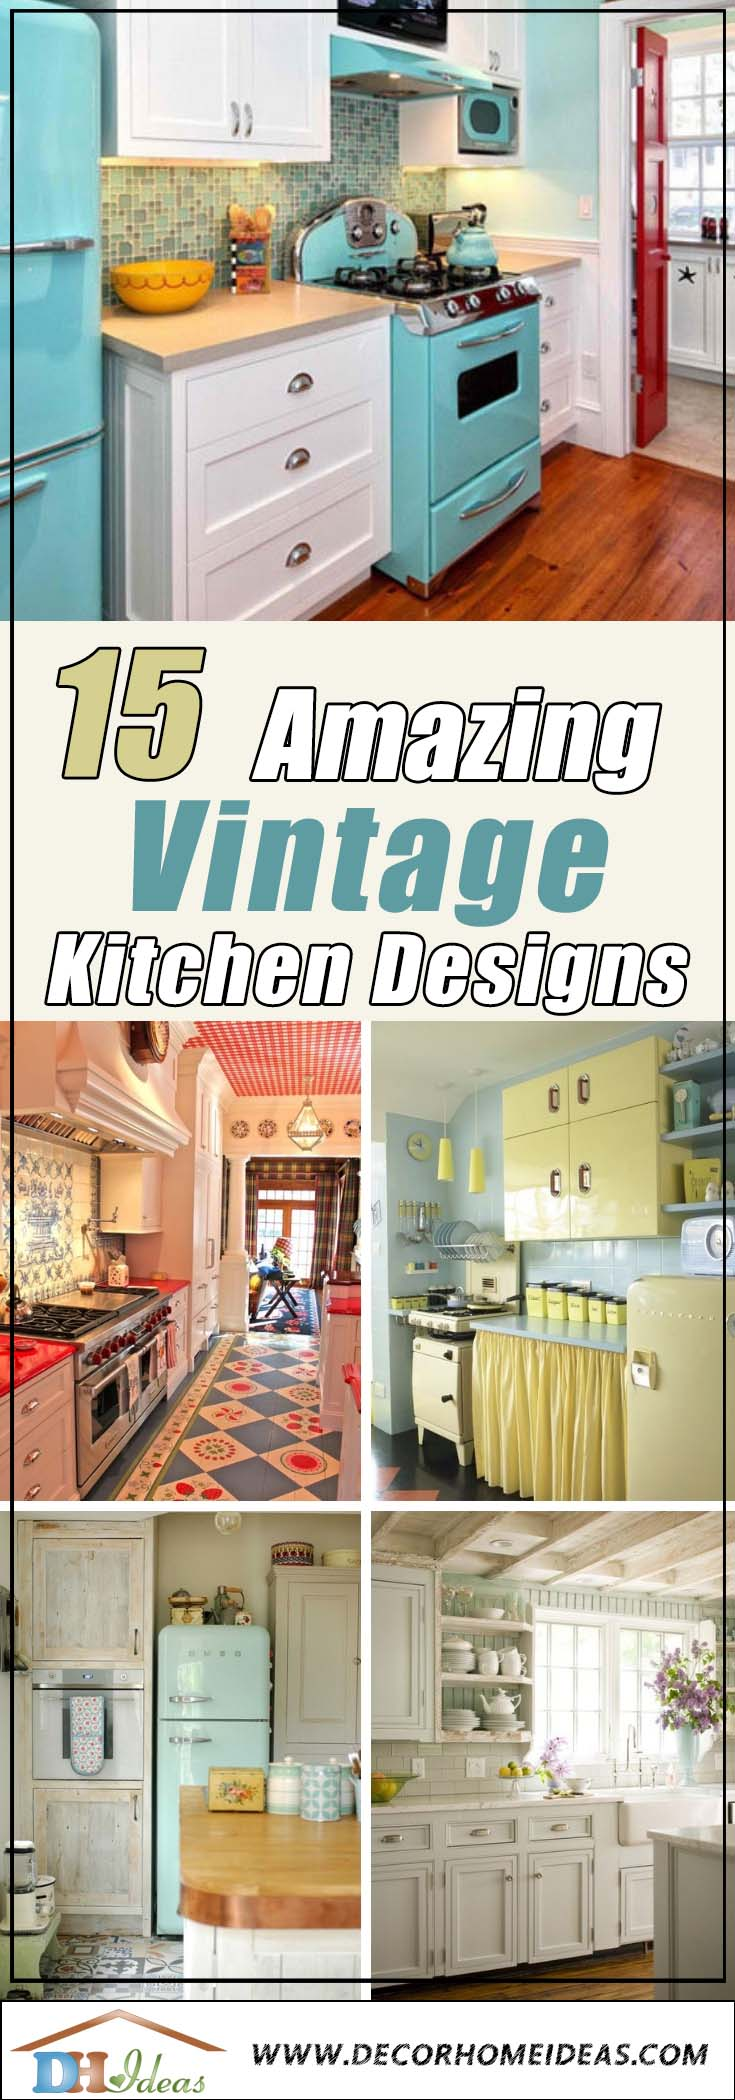 15 Wonderful Vintage Kitchen Designs To Inspire You | Create some vintage look in your kitchen with these amazing ideas. #kitchen #vintage #color #bold #design #interiordesign #homedecor #decorhomeideas